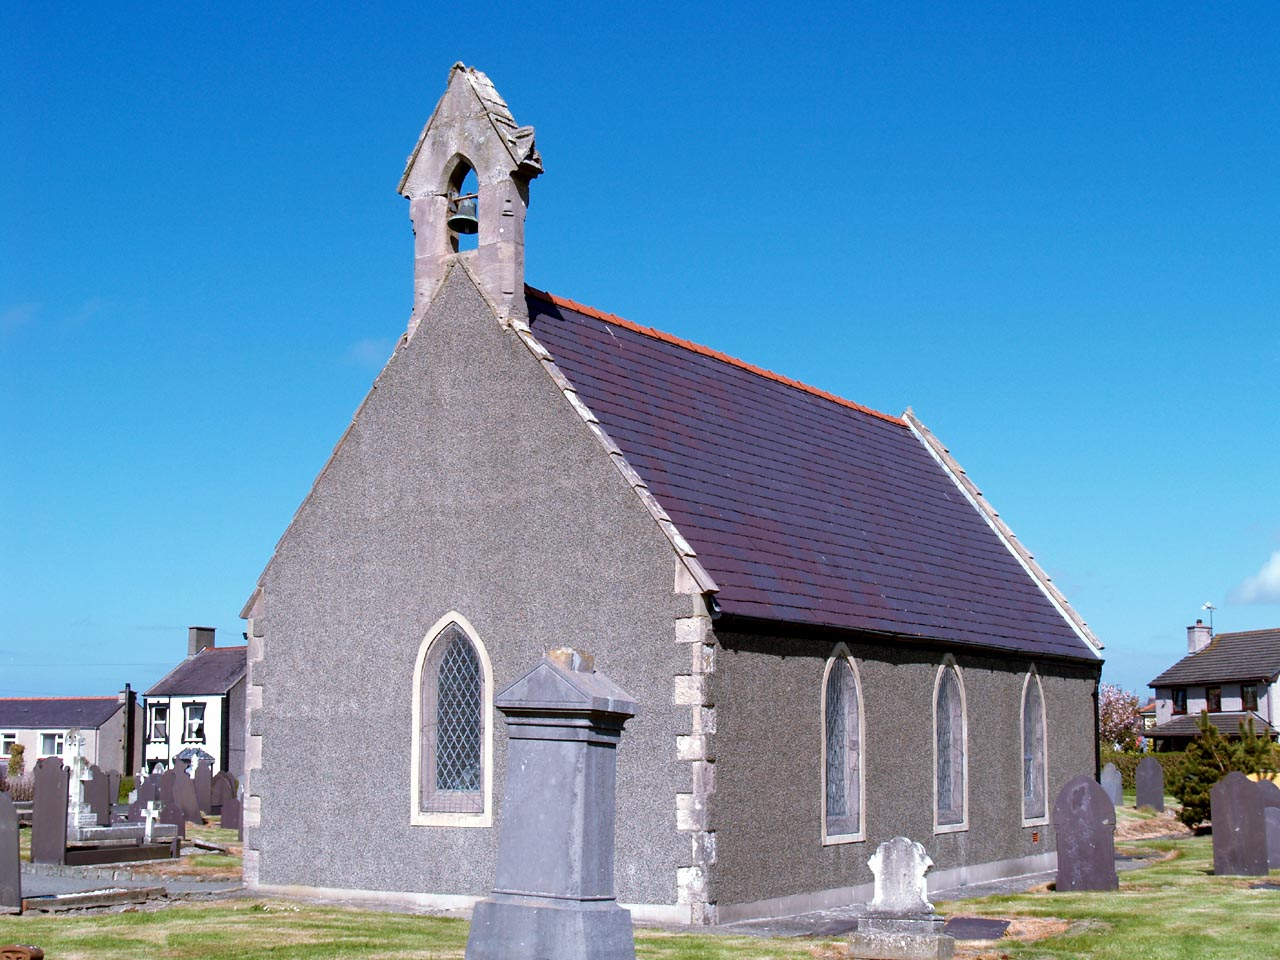 Anglesey, Holyhead, Maeshyfryd Church in May 2013